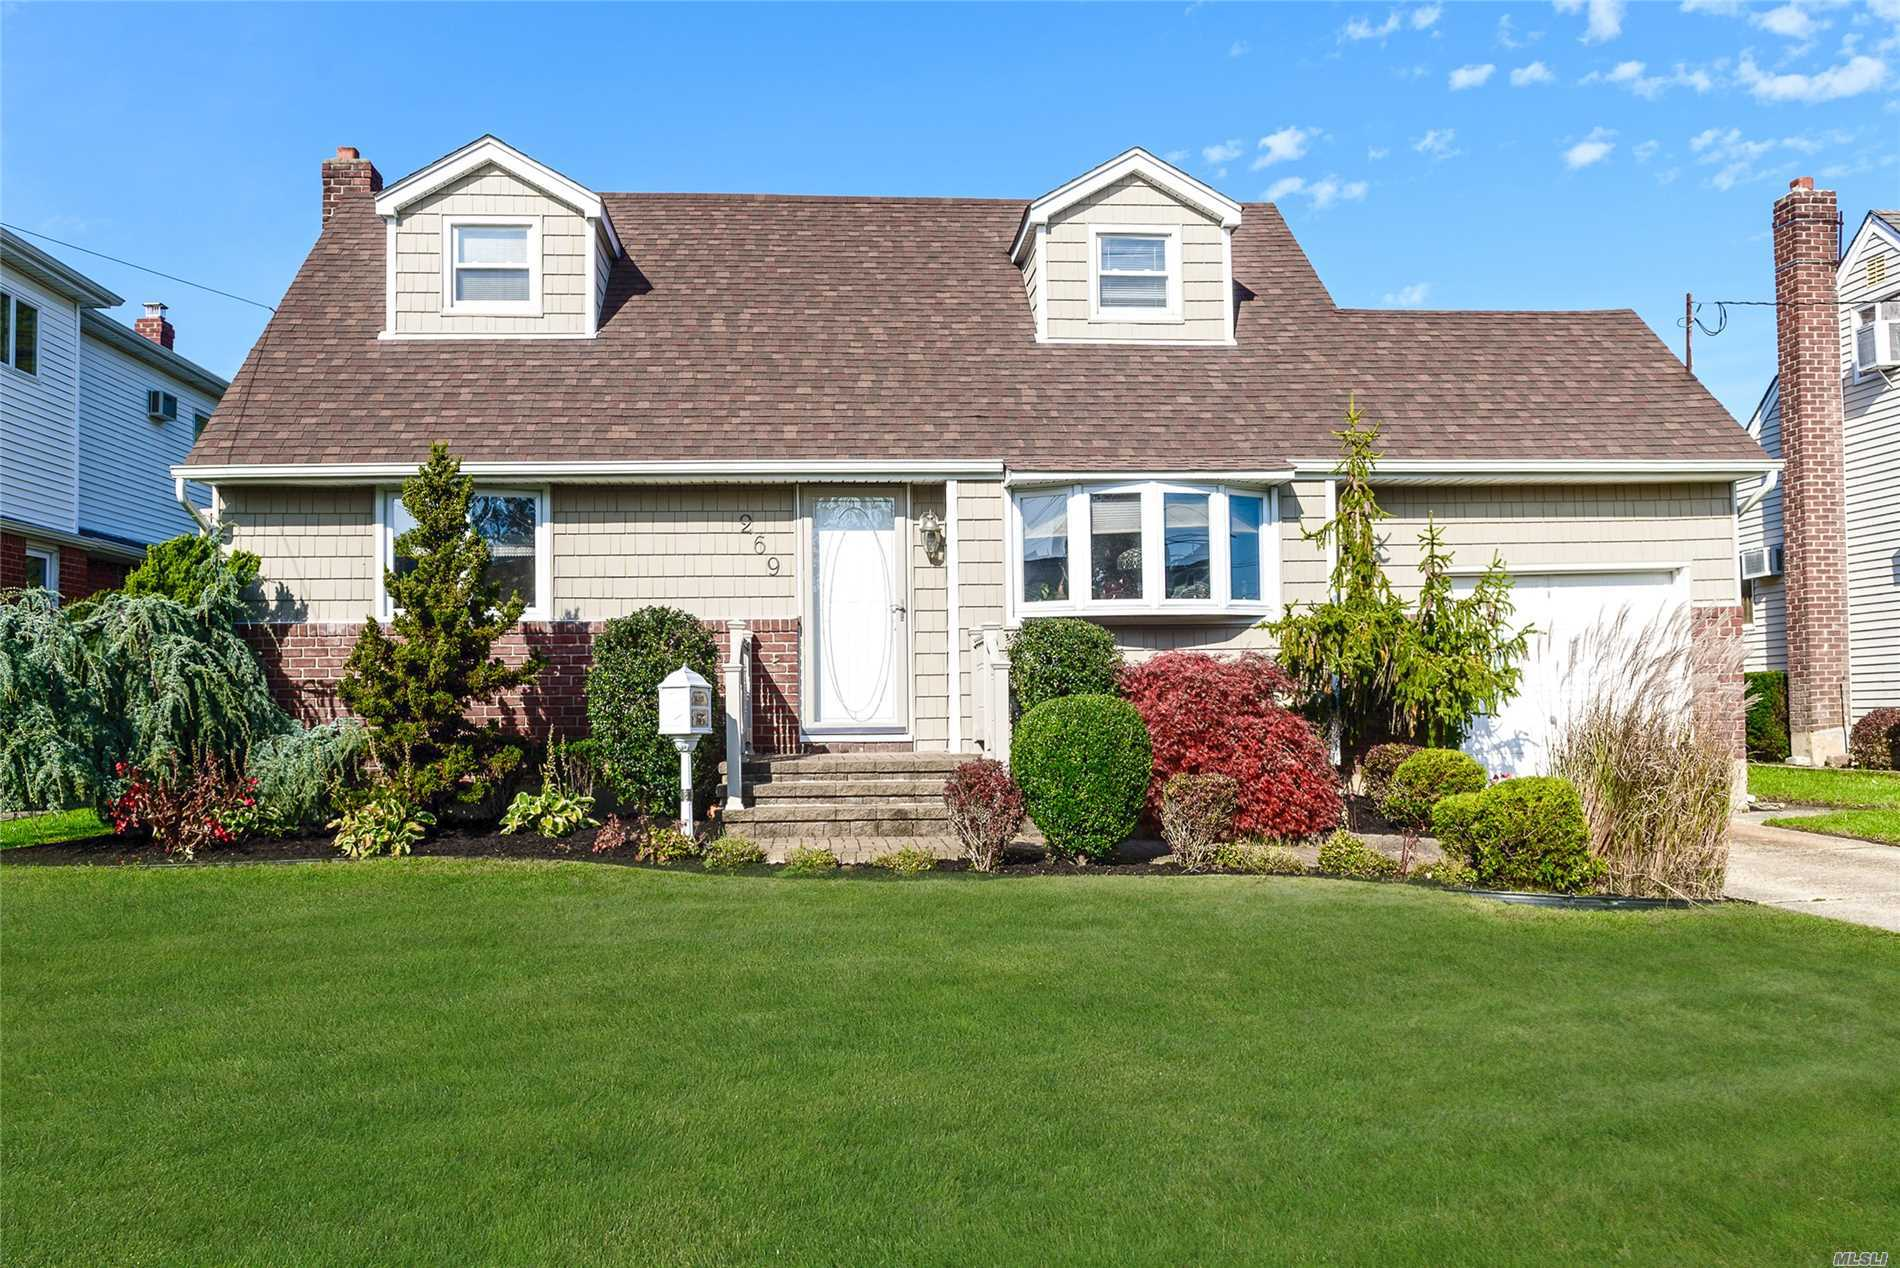 Lovely 4 Bed, 2 Bath Cape In North Massapequa For $439, 000. Situated Midblock With Beautiful Curb Appeal, This Home Is Ready For A New Owner. Boasting New Siding, Windows, Roof & Front Walkway, This Is A Great Home W/ Hardwood Floors, Finished Basement, 1 Car Garage, Private Yard & Much More!